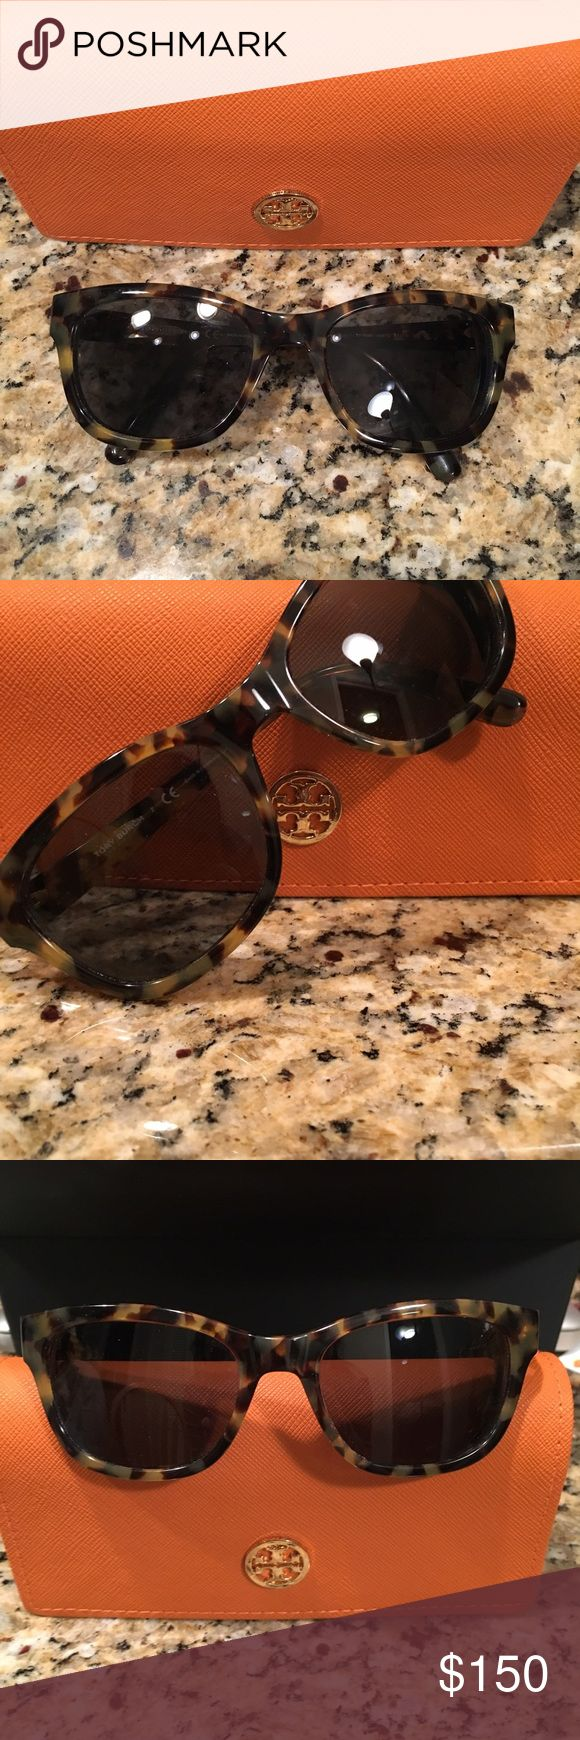 tory burch sunglasses only worn a handful of times in excellent condition tortoiseshell tory